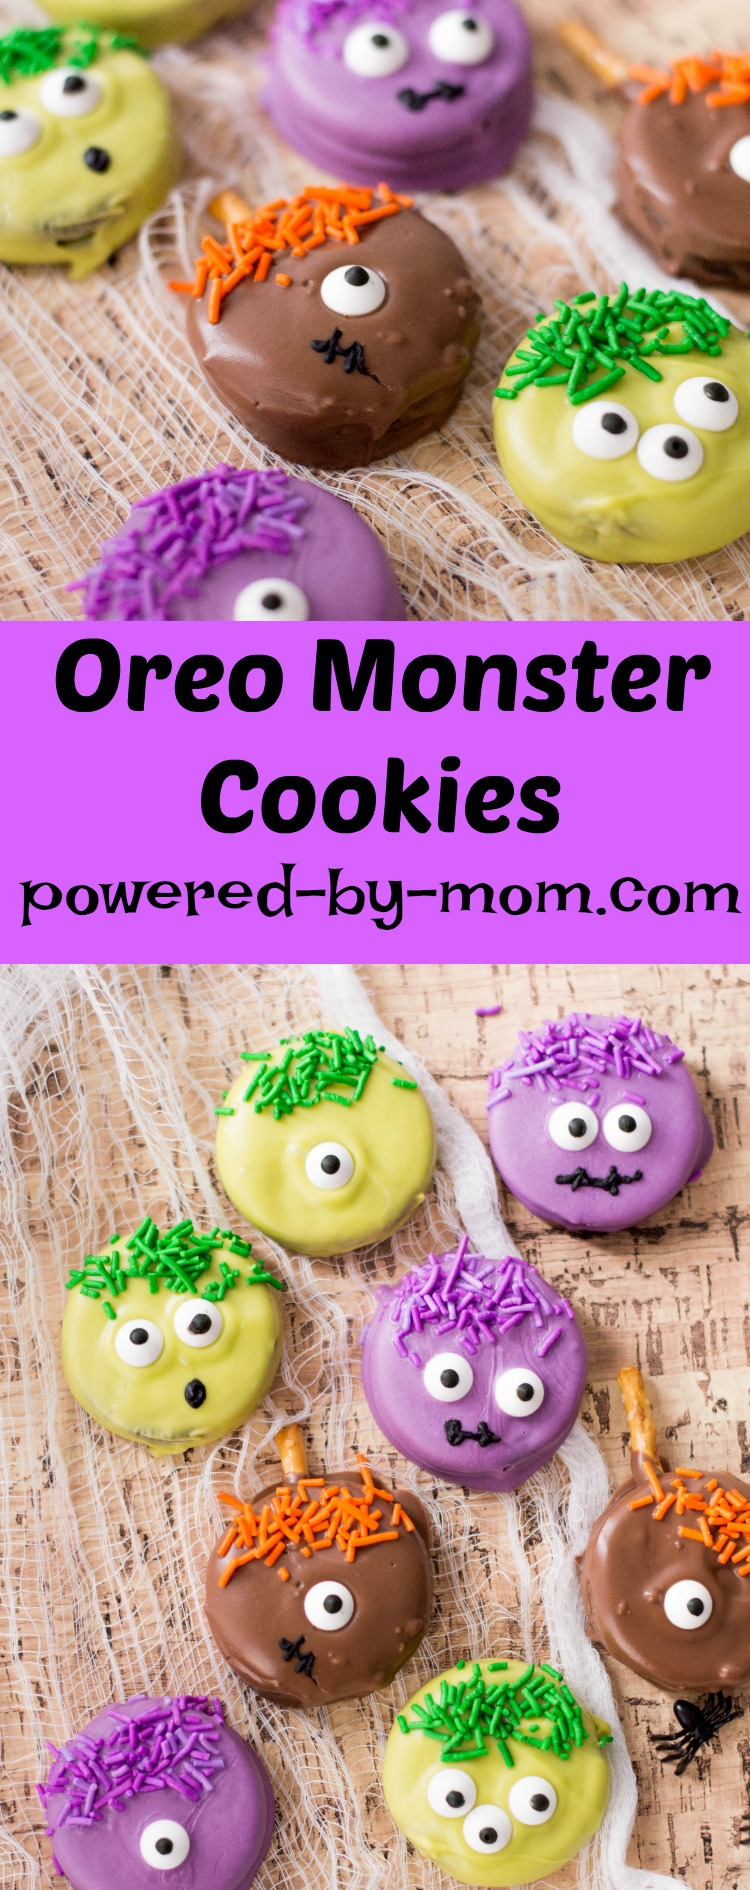 Oreo Monster cookies